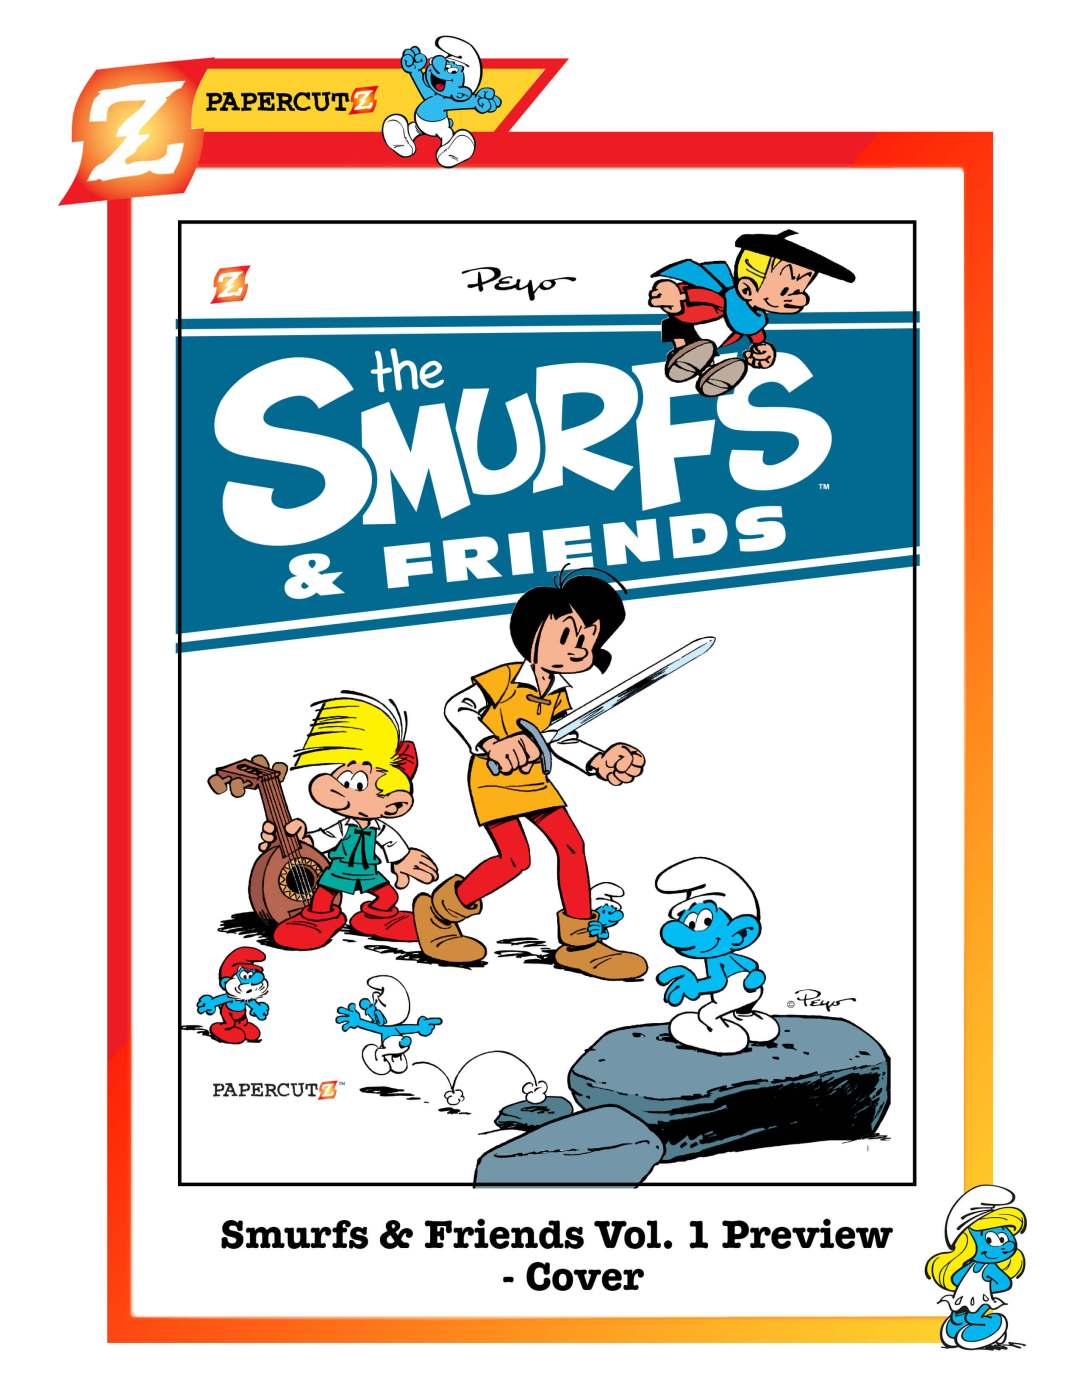 Smurfs_and_Friends_preview_cover